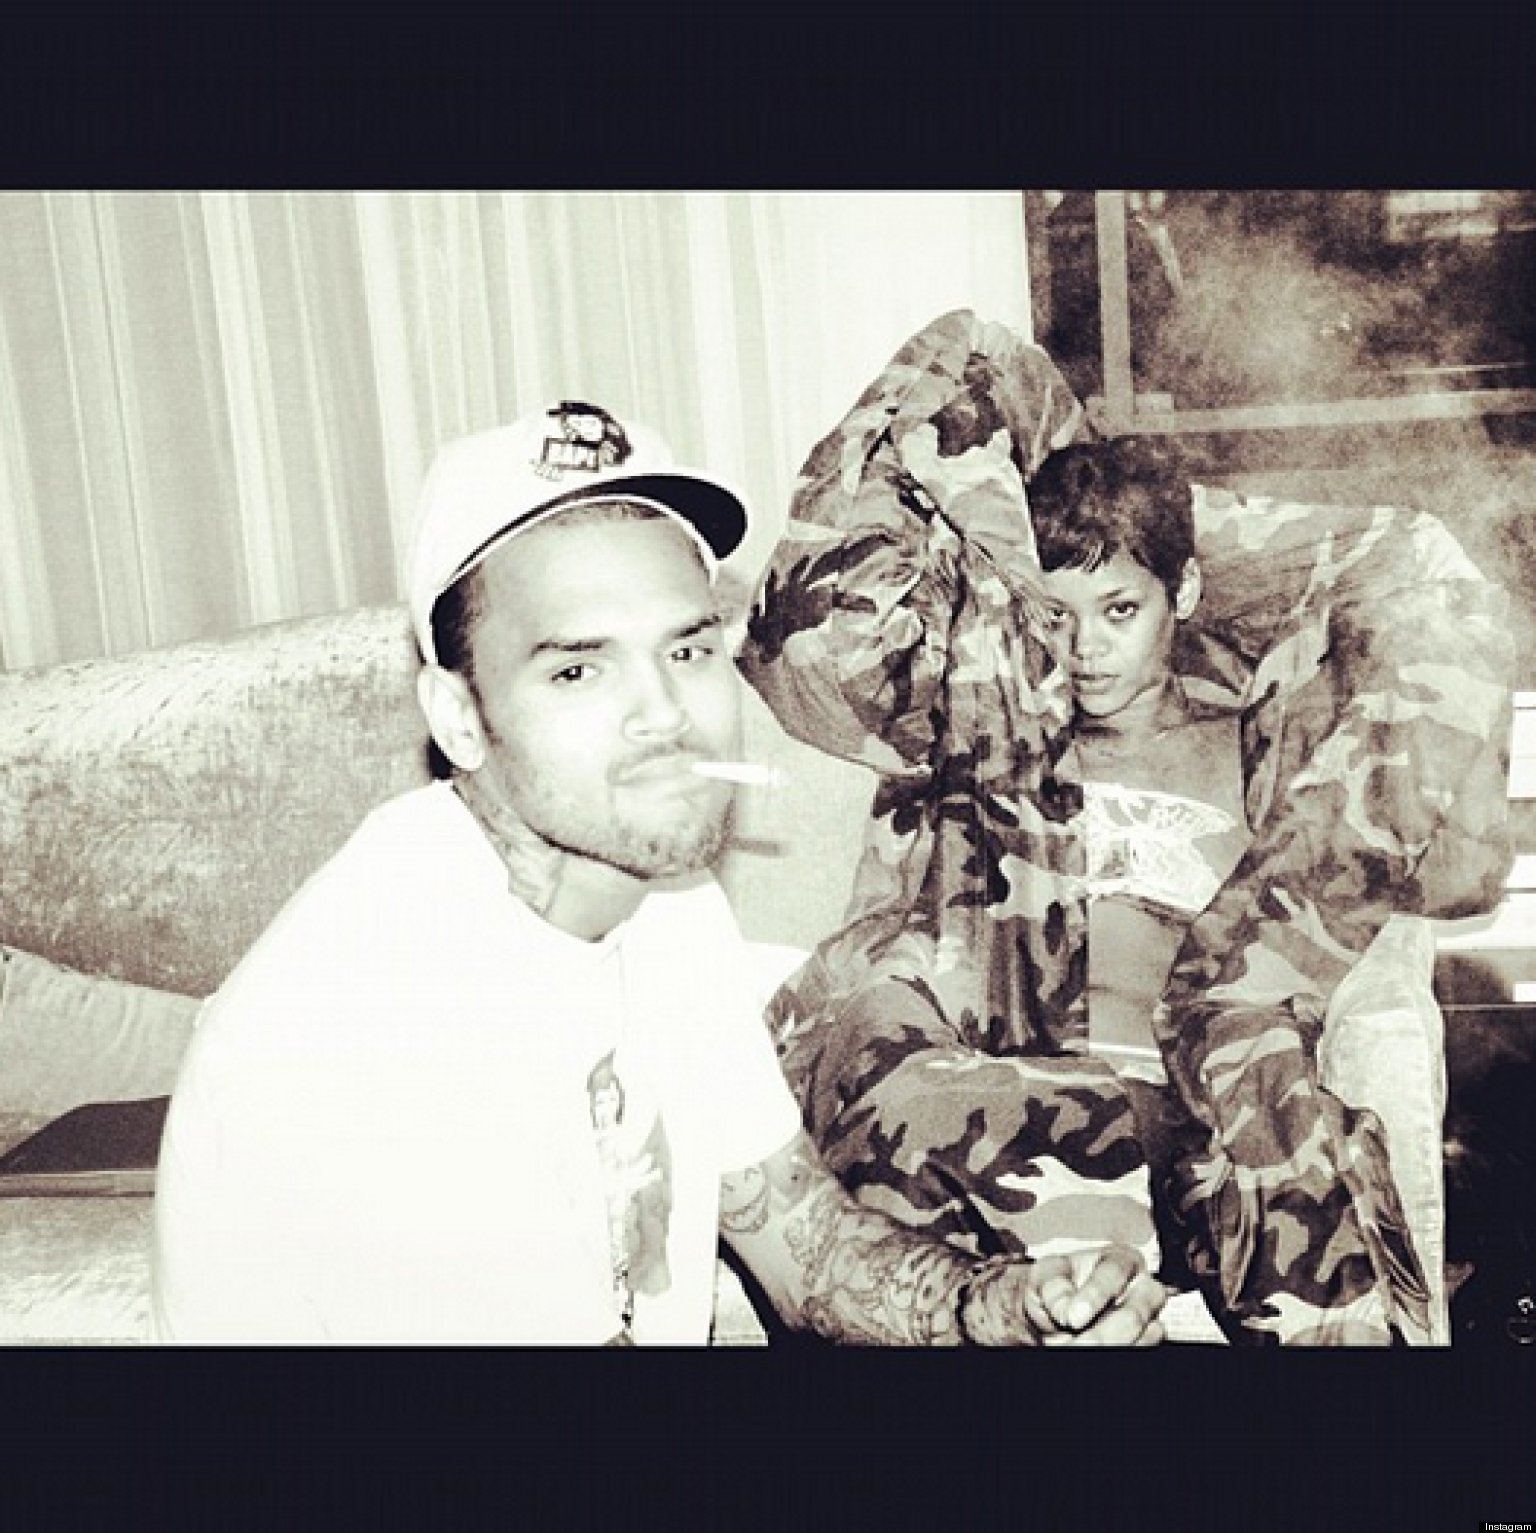 Rihanna Biography, Instagram, Age, Songs, Birthday and Net ...